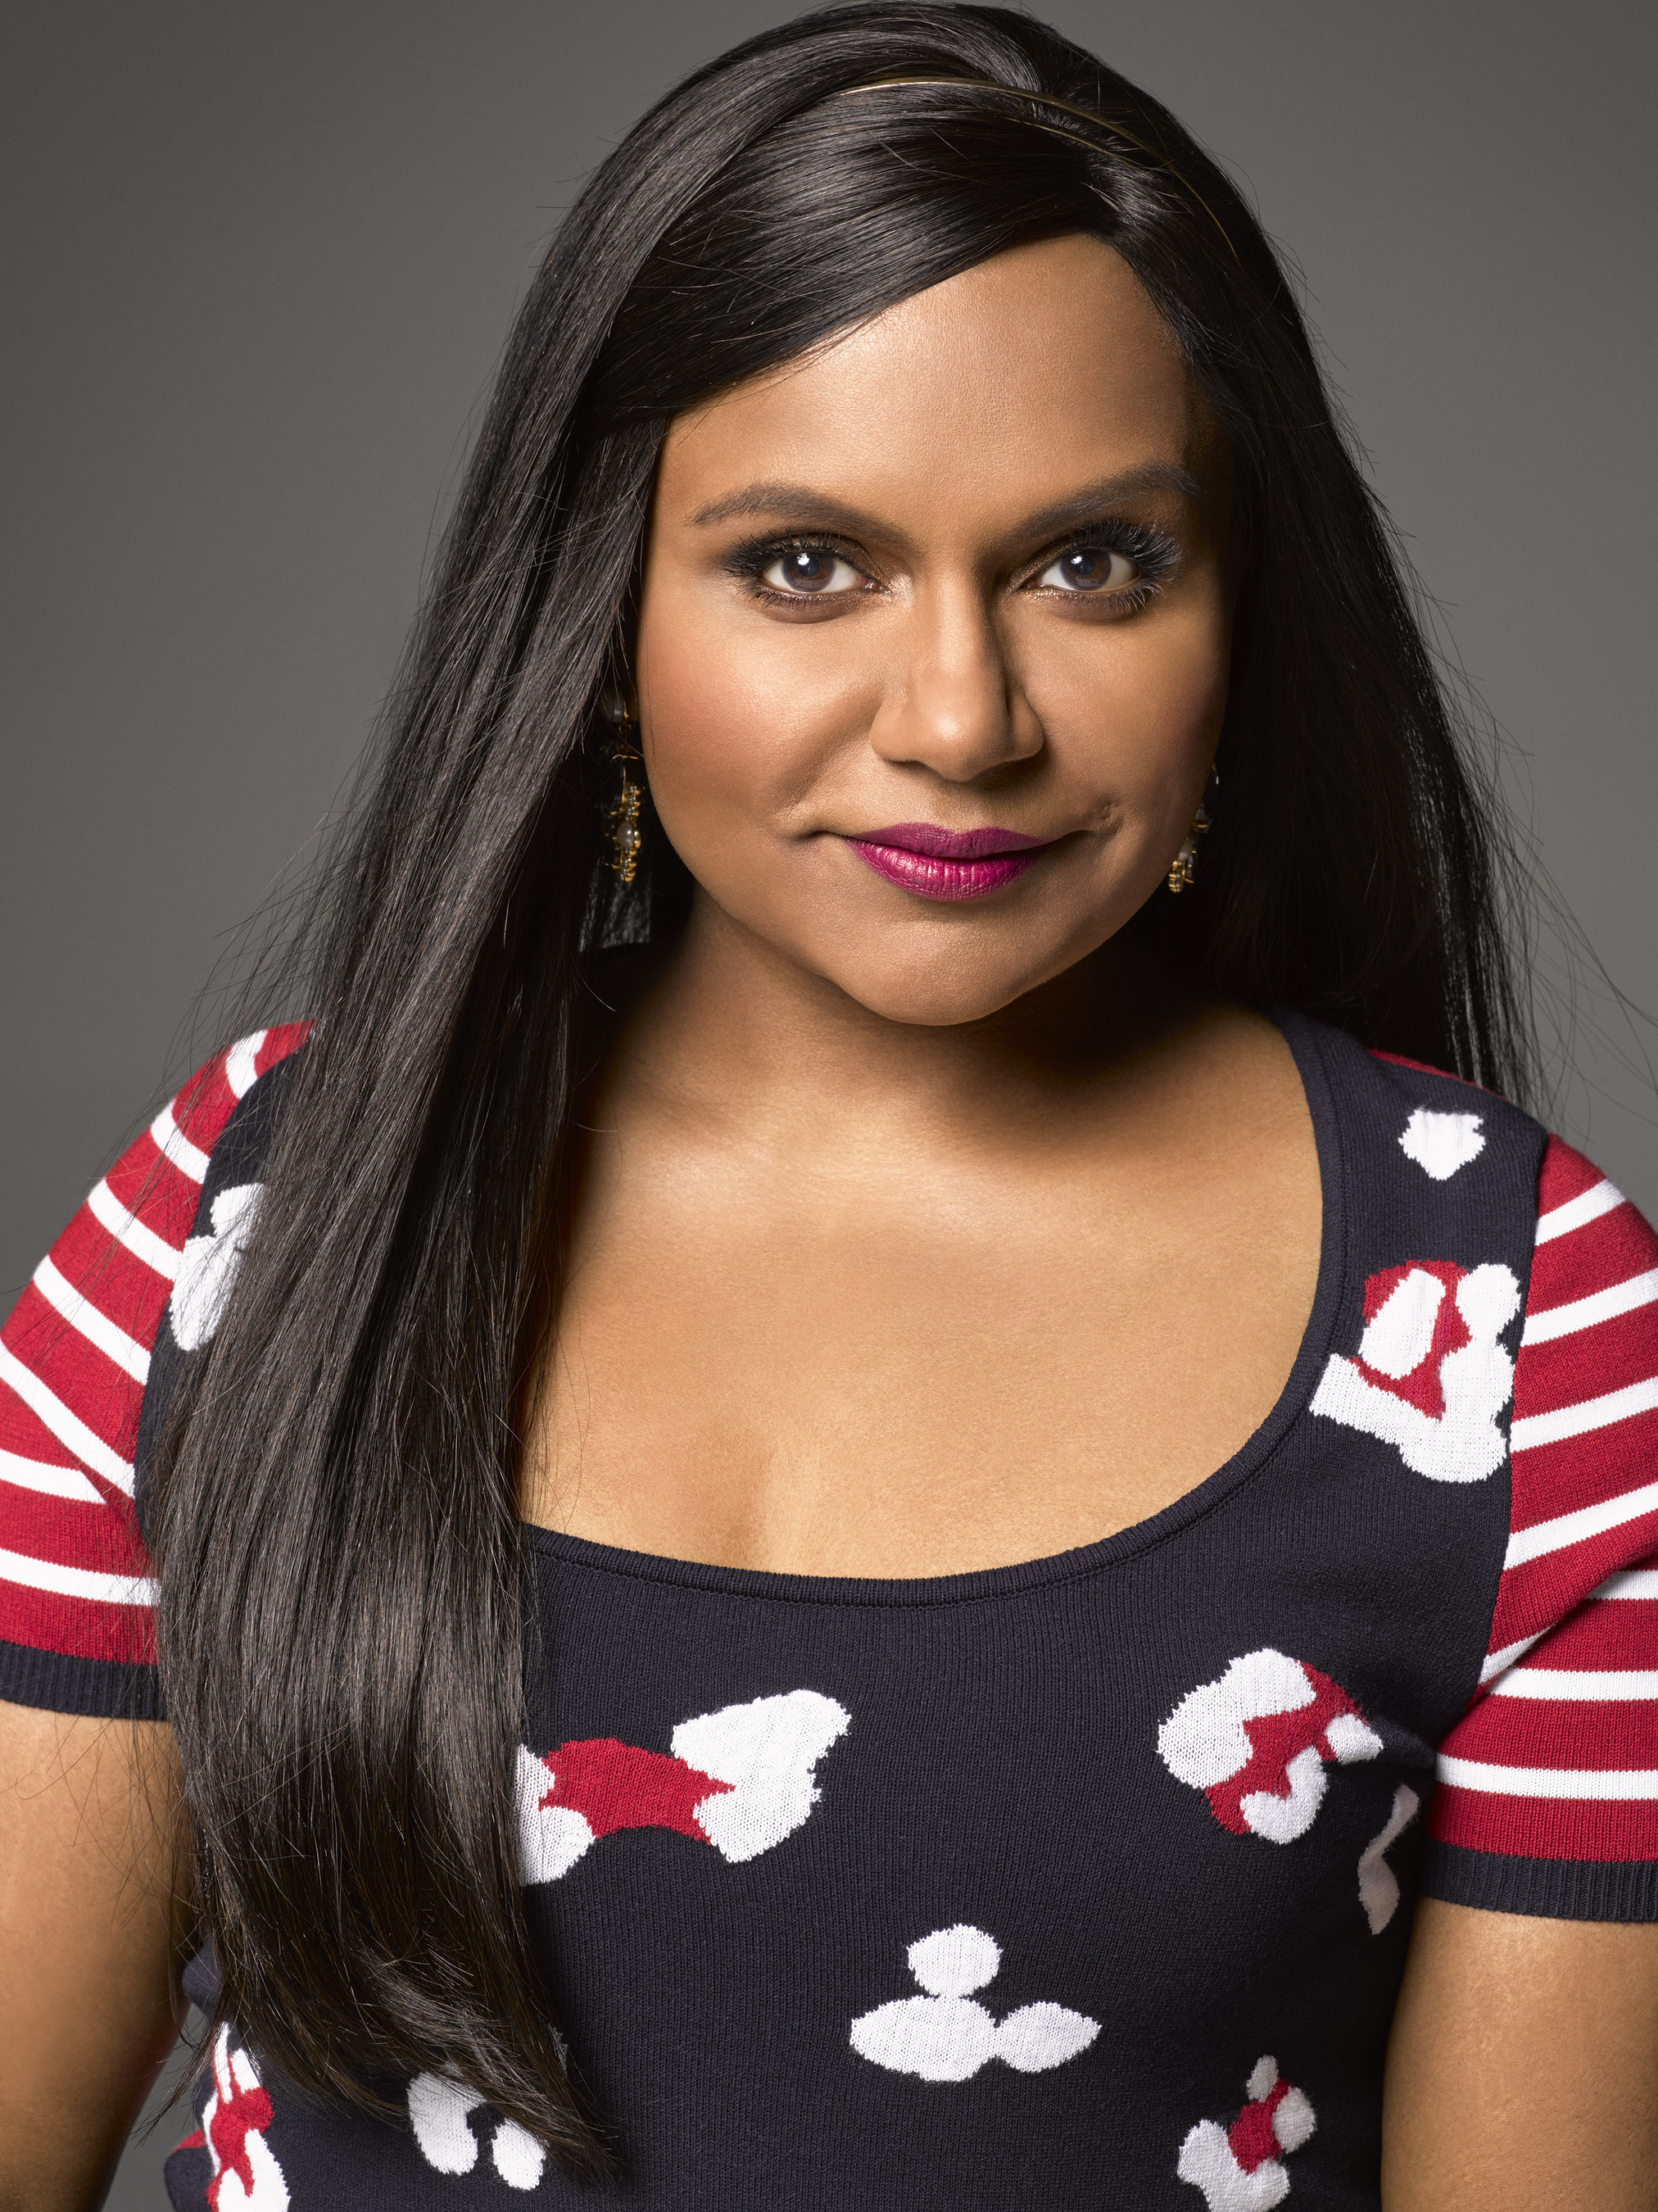 Watermark Conference for Women Announces Actor and Author Mindy Kaling, Soccer Superstar Abby